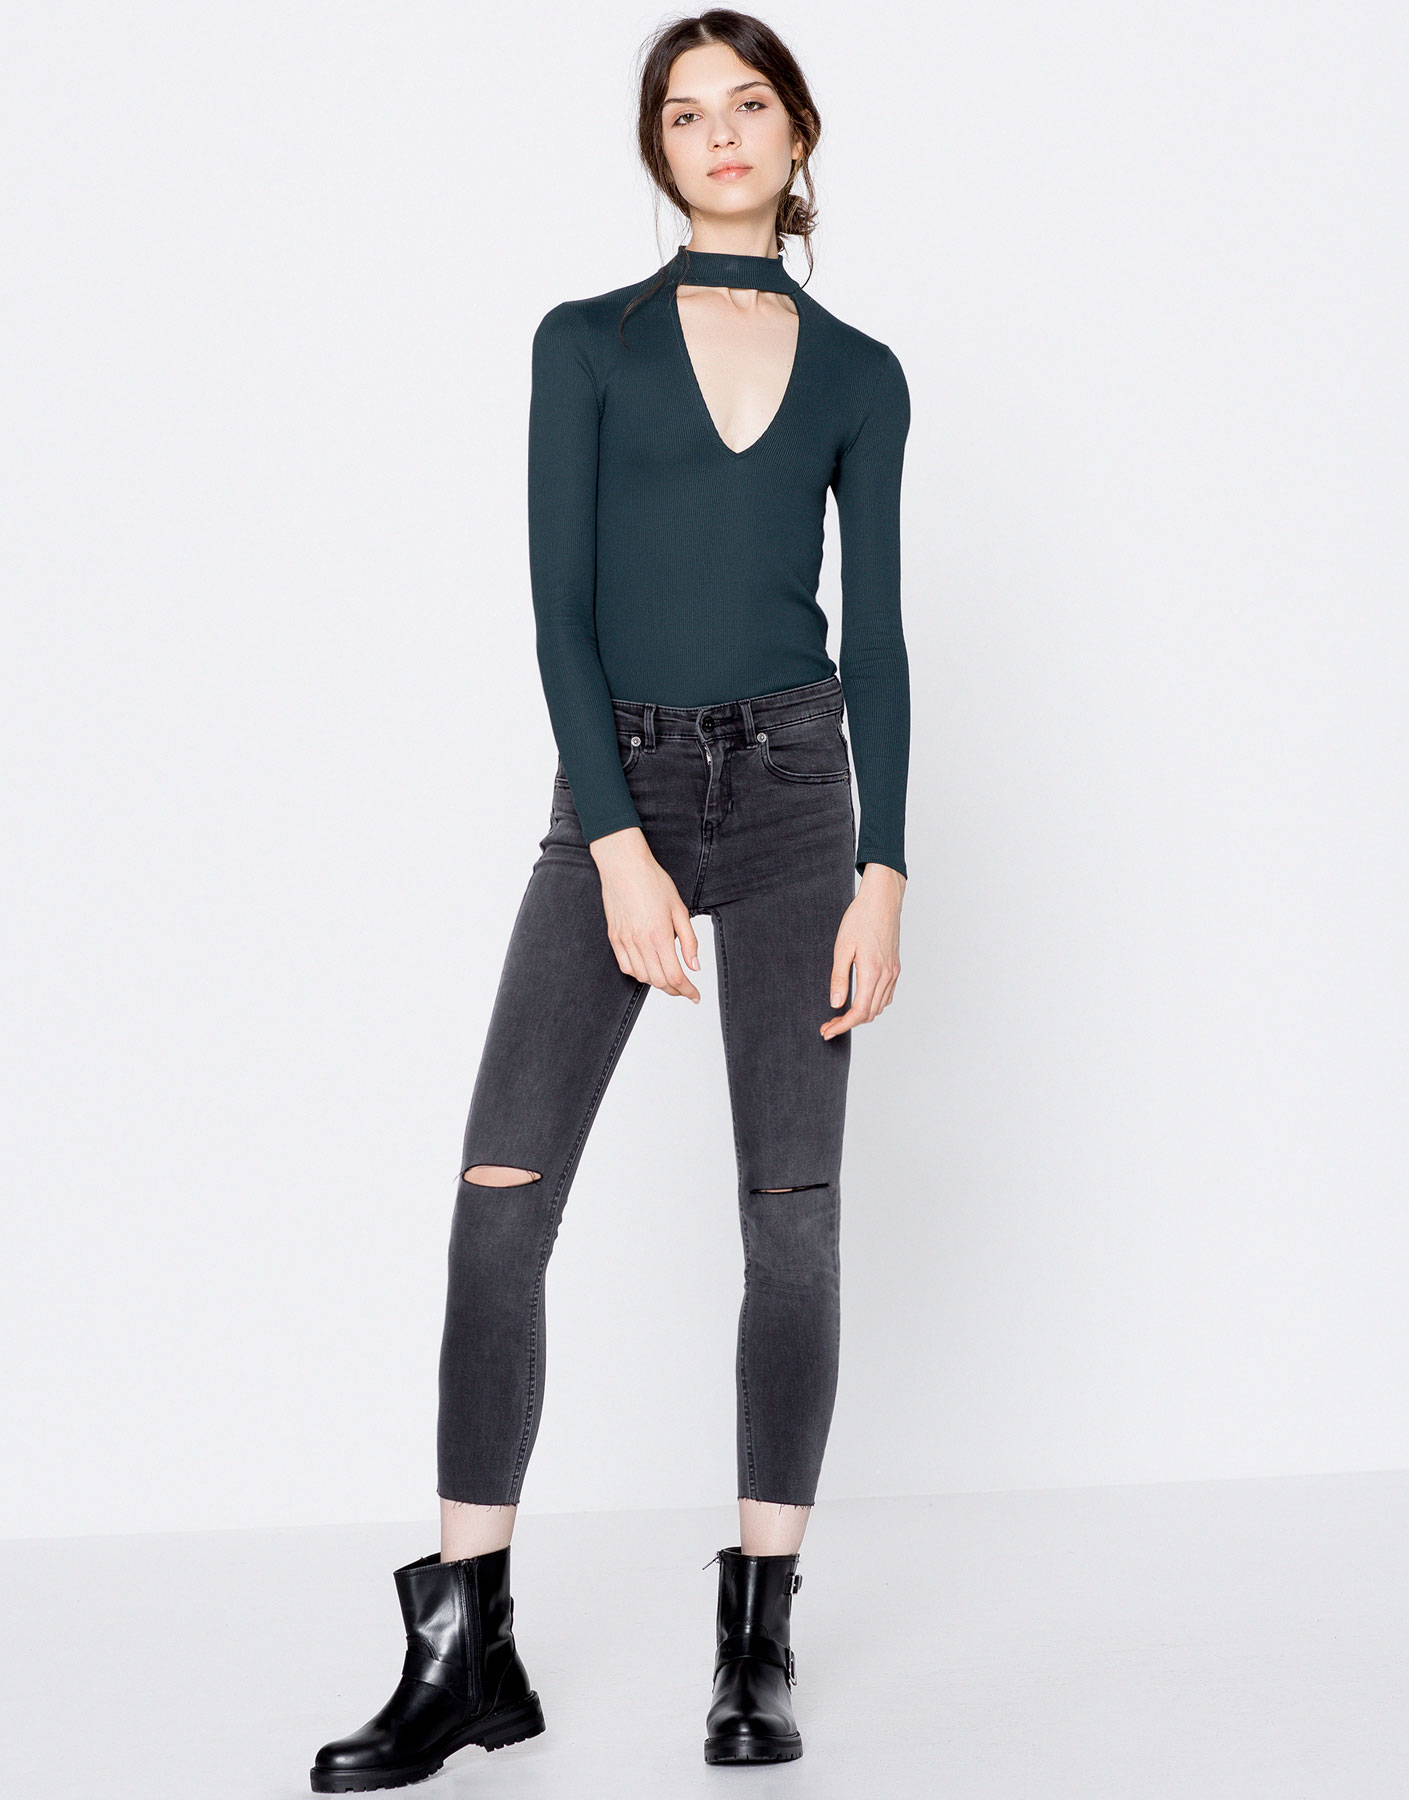 High collar top with cut-out V-neck